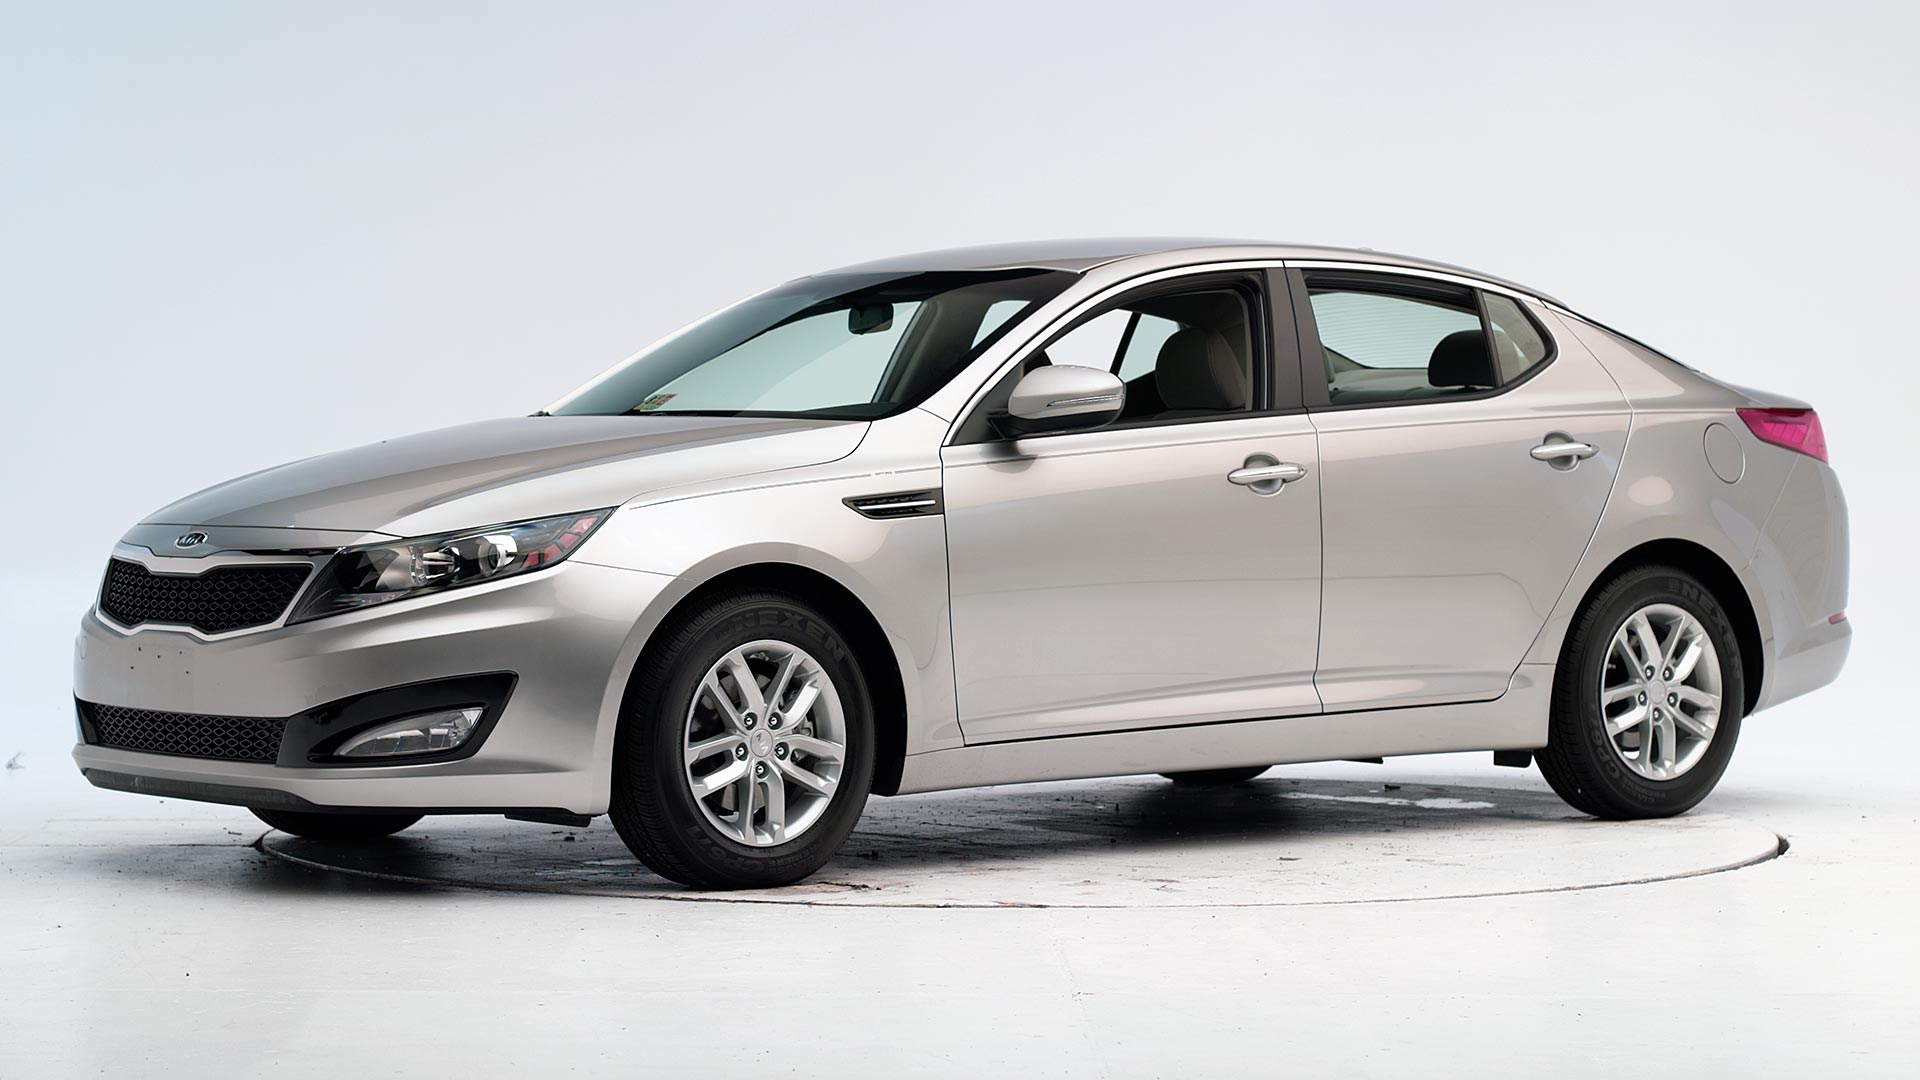 2015 Kia Optima 4-door sedan